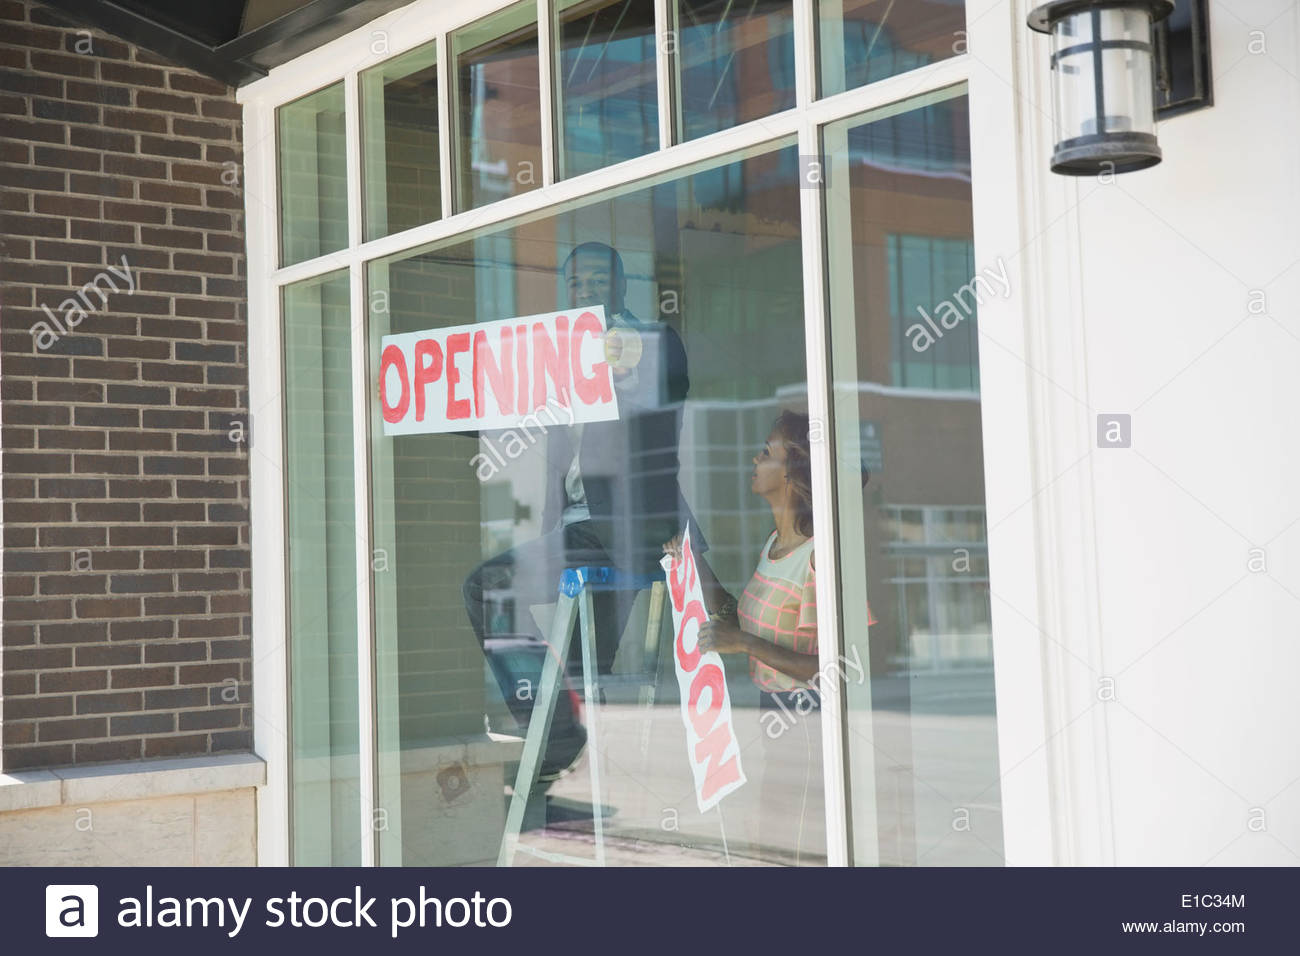 Business owners hanging Opening sign in shop window - Stock Image